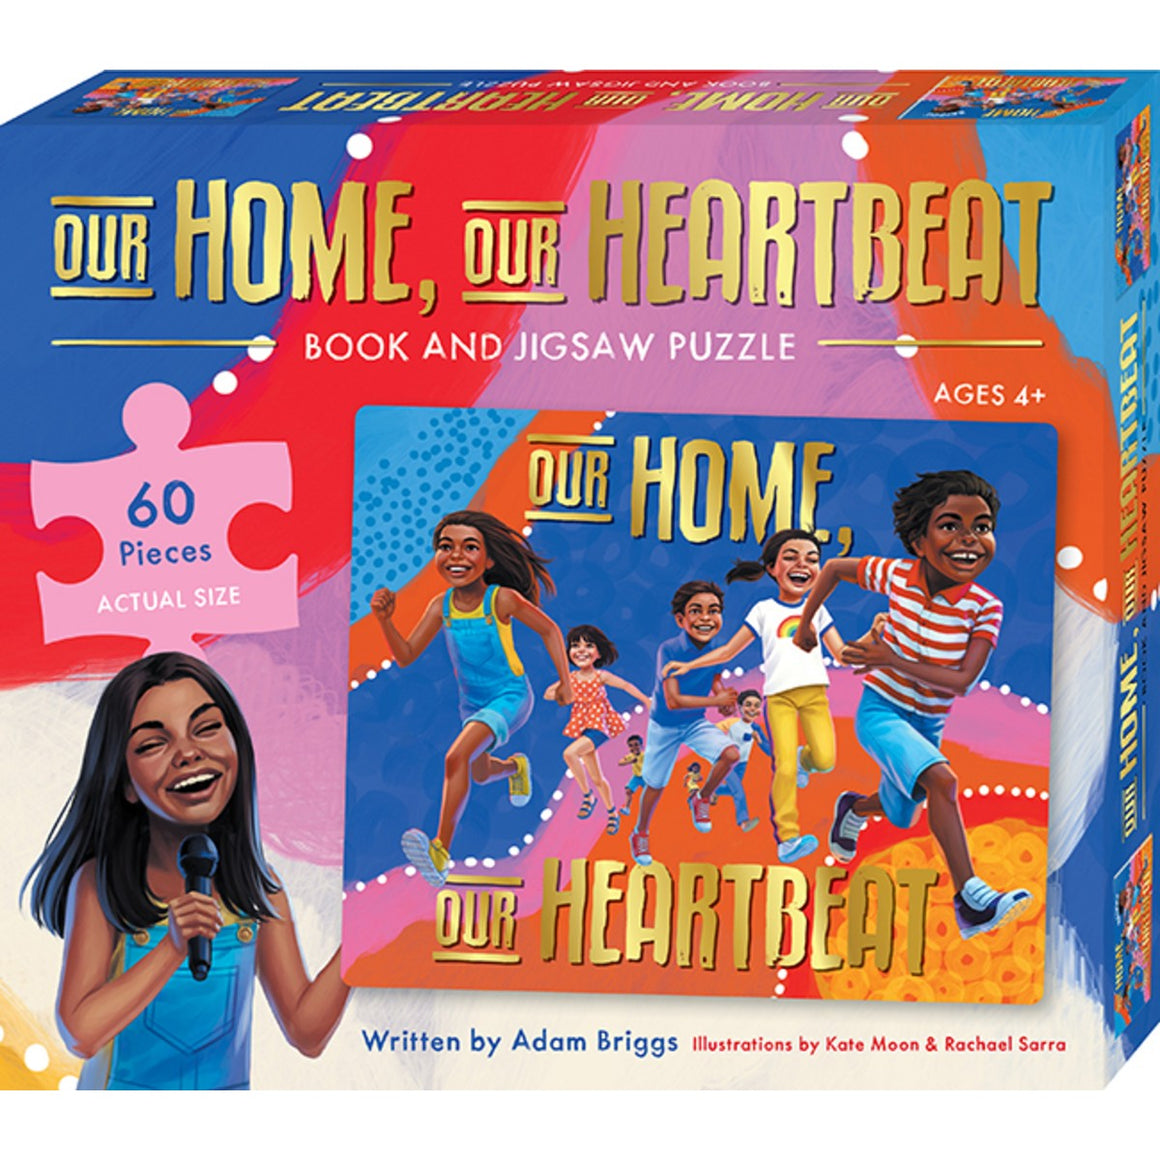 Our Home, Our Heartbeat Book and Puzzle Set | Author: Adam Briggs